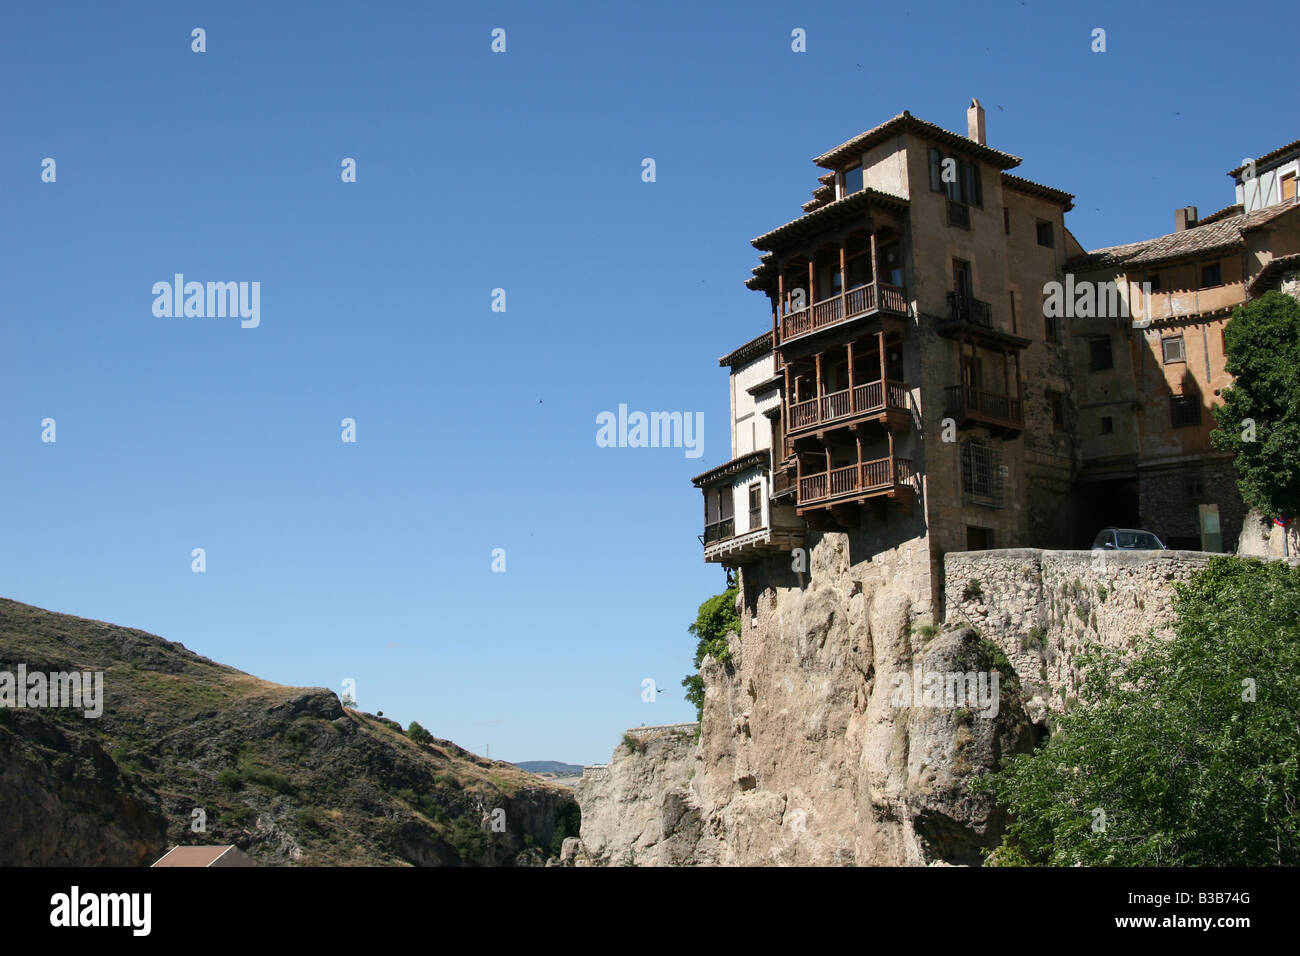 The Hanging Houses And Cliffs Of Cuenca, Spain Over The River Gorge